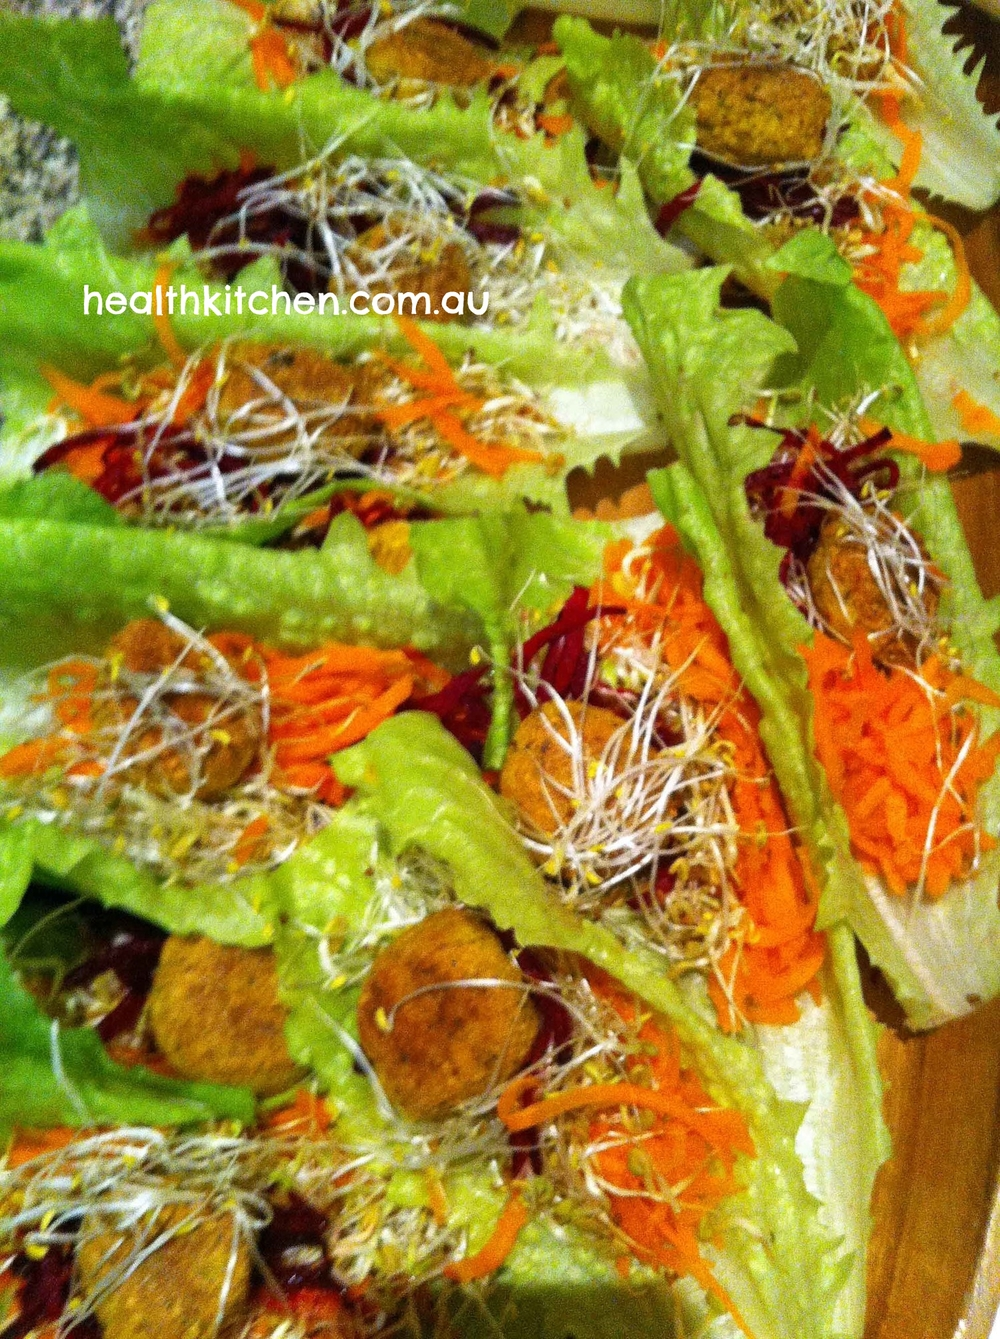 Cos lettuce, tofu balls & salad boats for a bottle & plate night went down well